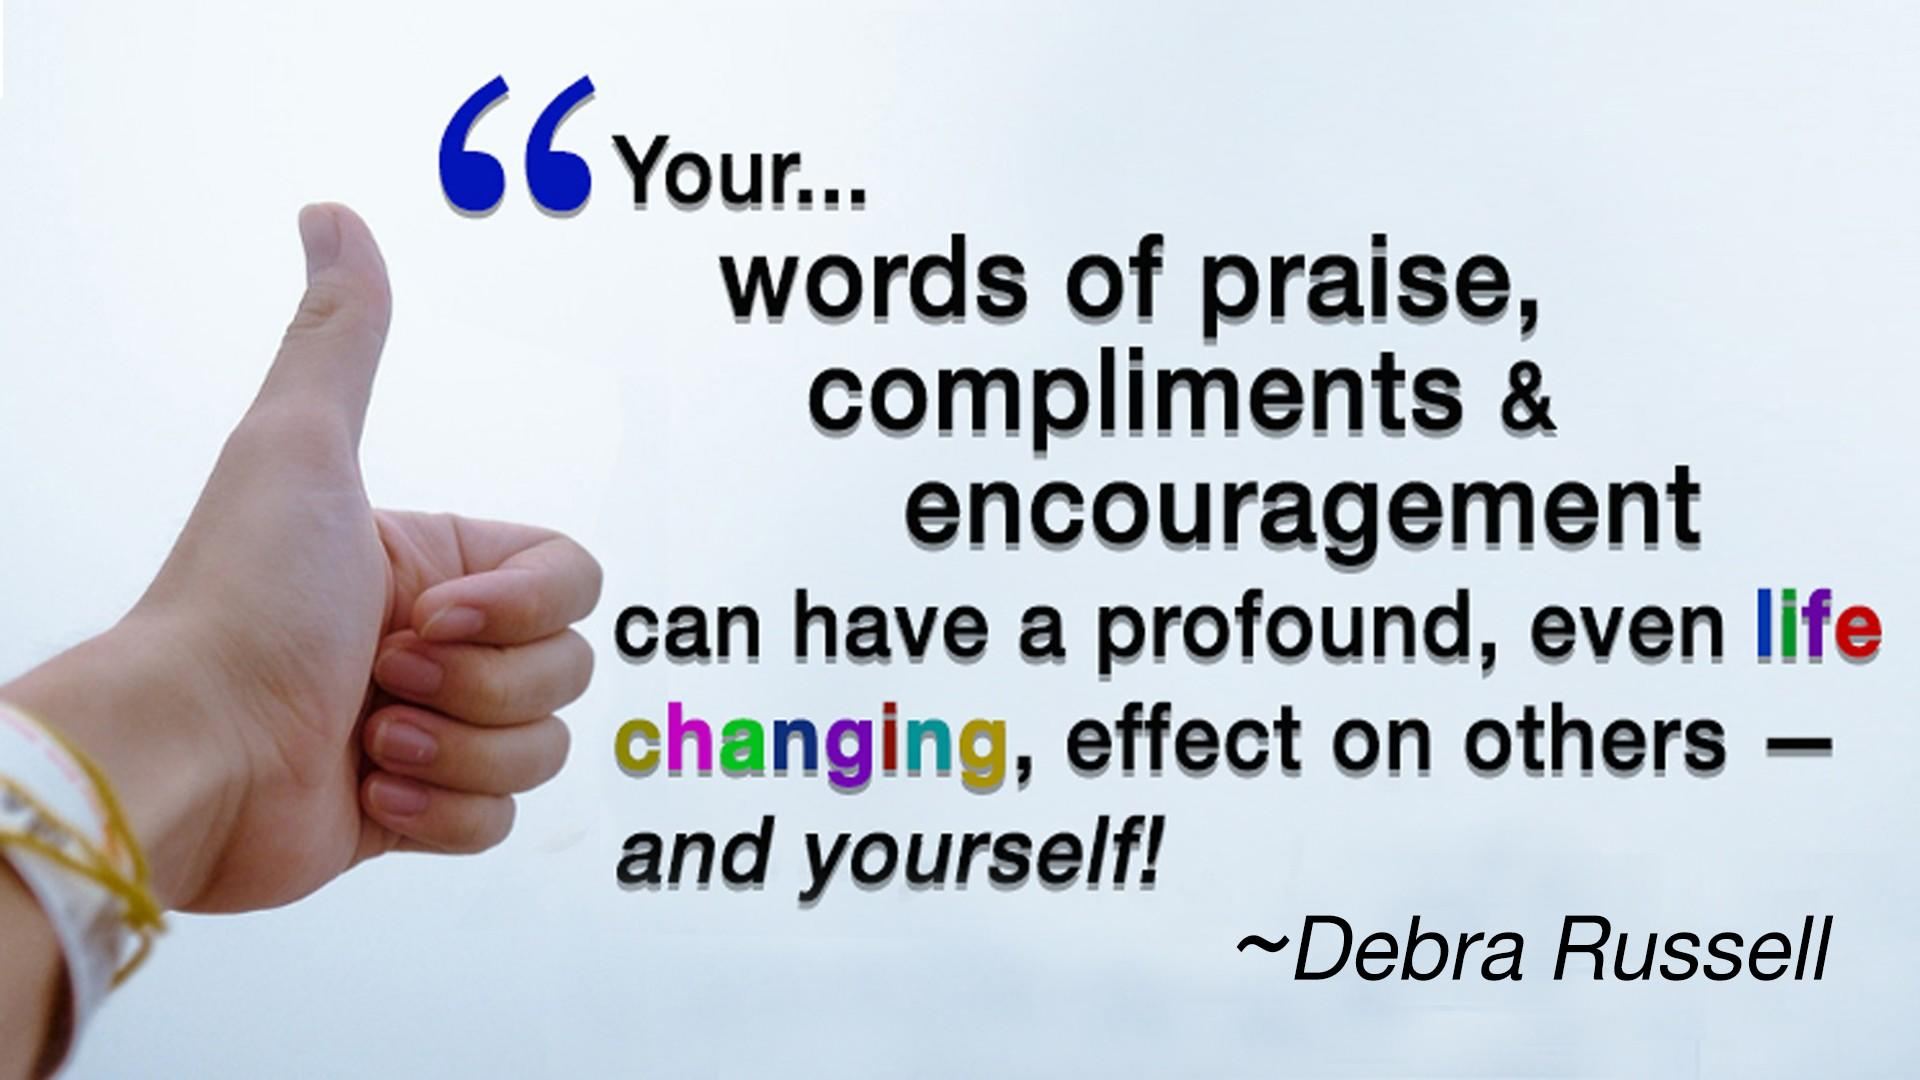 Debra Russell Quote - Your words of praise, compliments and encouragement can have a profound, even life changing, effect on others and yourself.